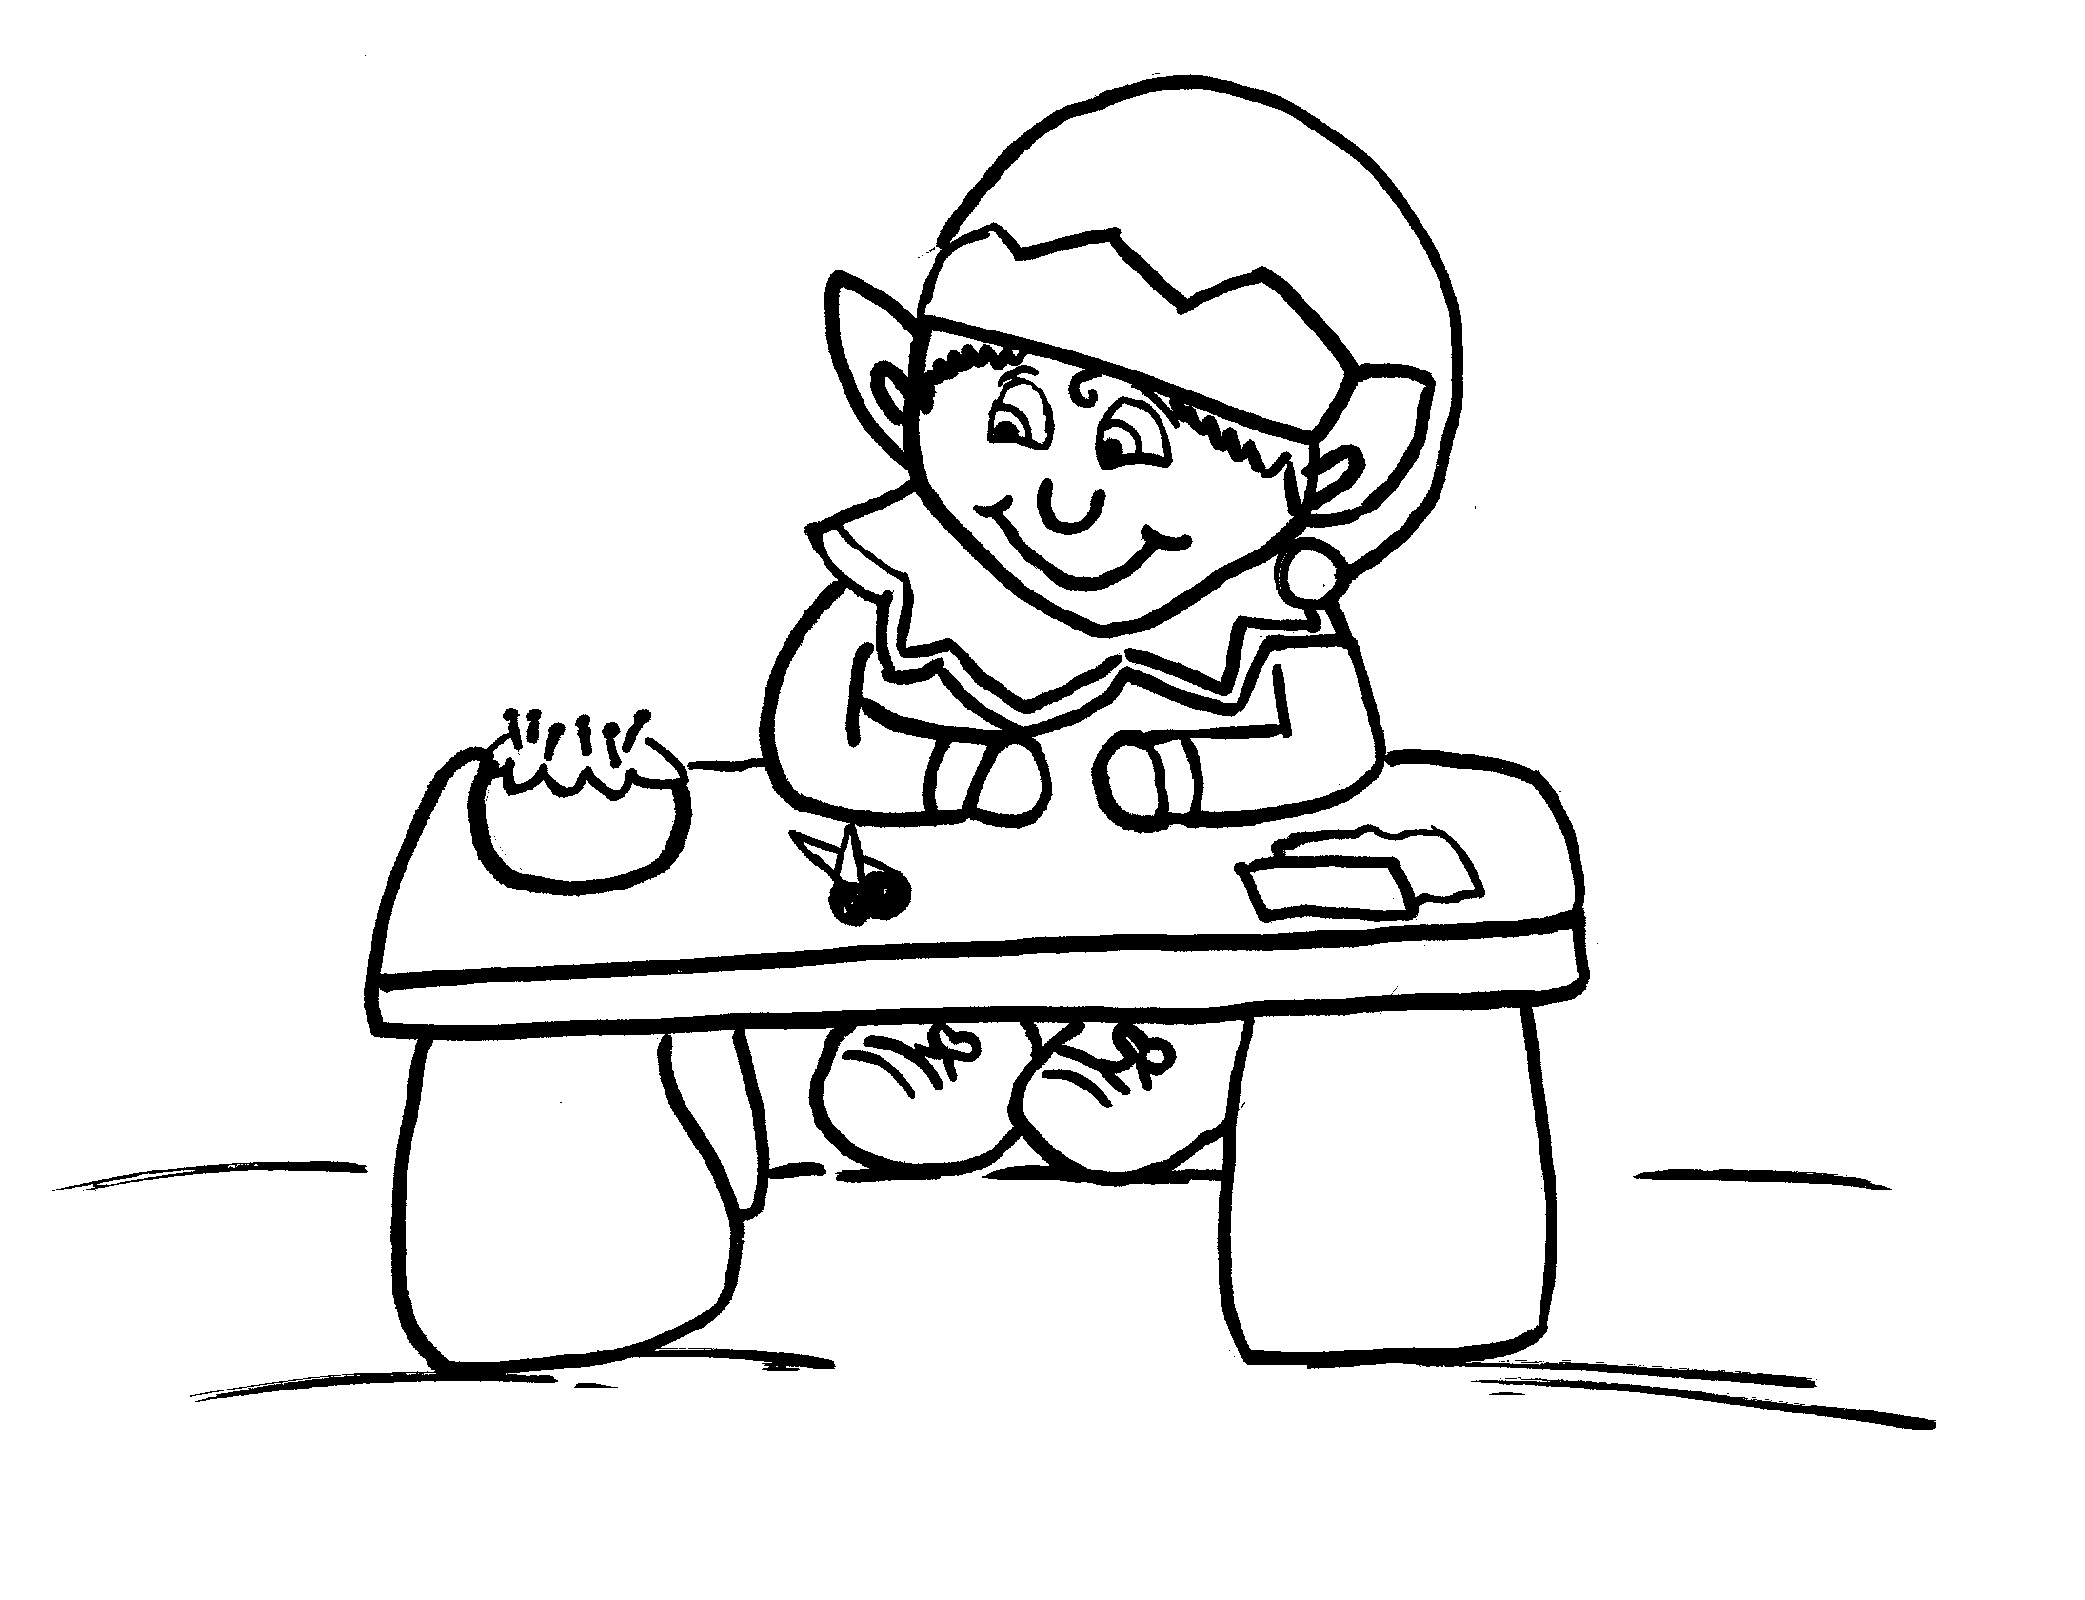 photograph regarding Elf on the Shelf Printable Coloring Pages identified as Elf Upon The Shelf Printable Coloring Internet pages Free of charge K5 Worksheets